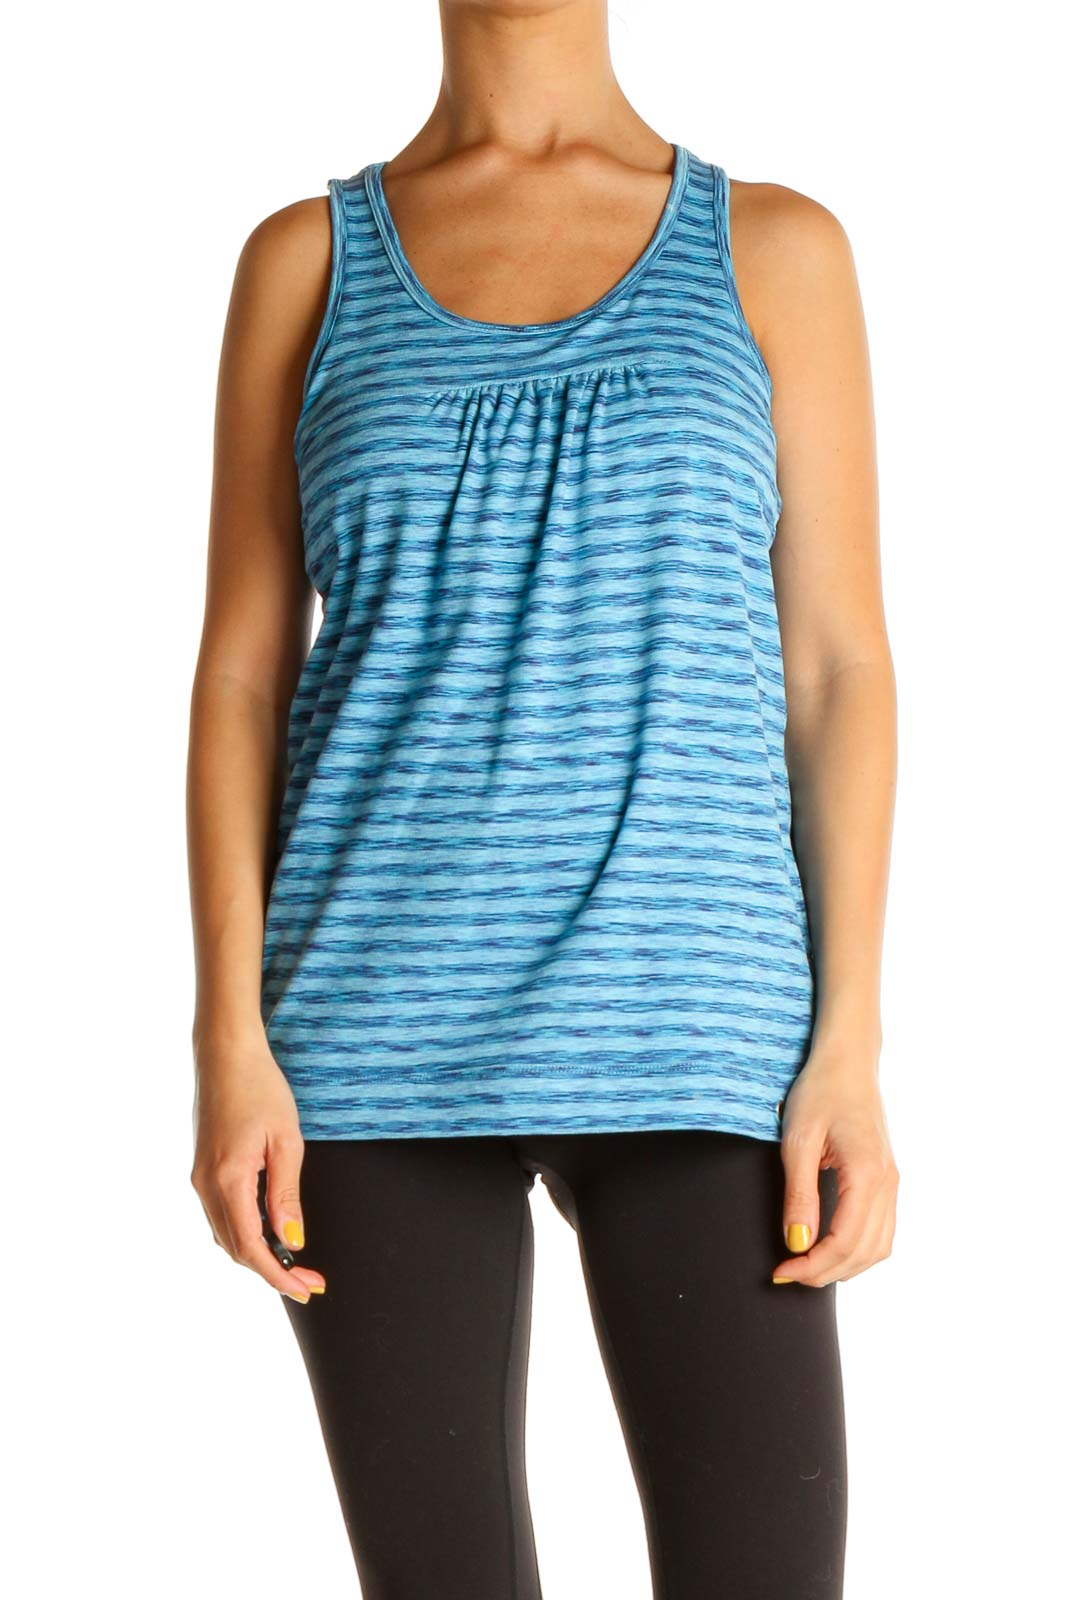 Blue Striped Activewear Tank Top Front